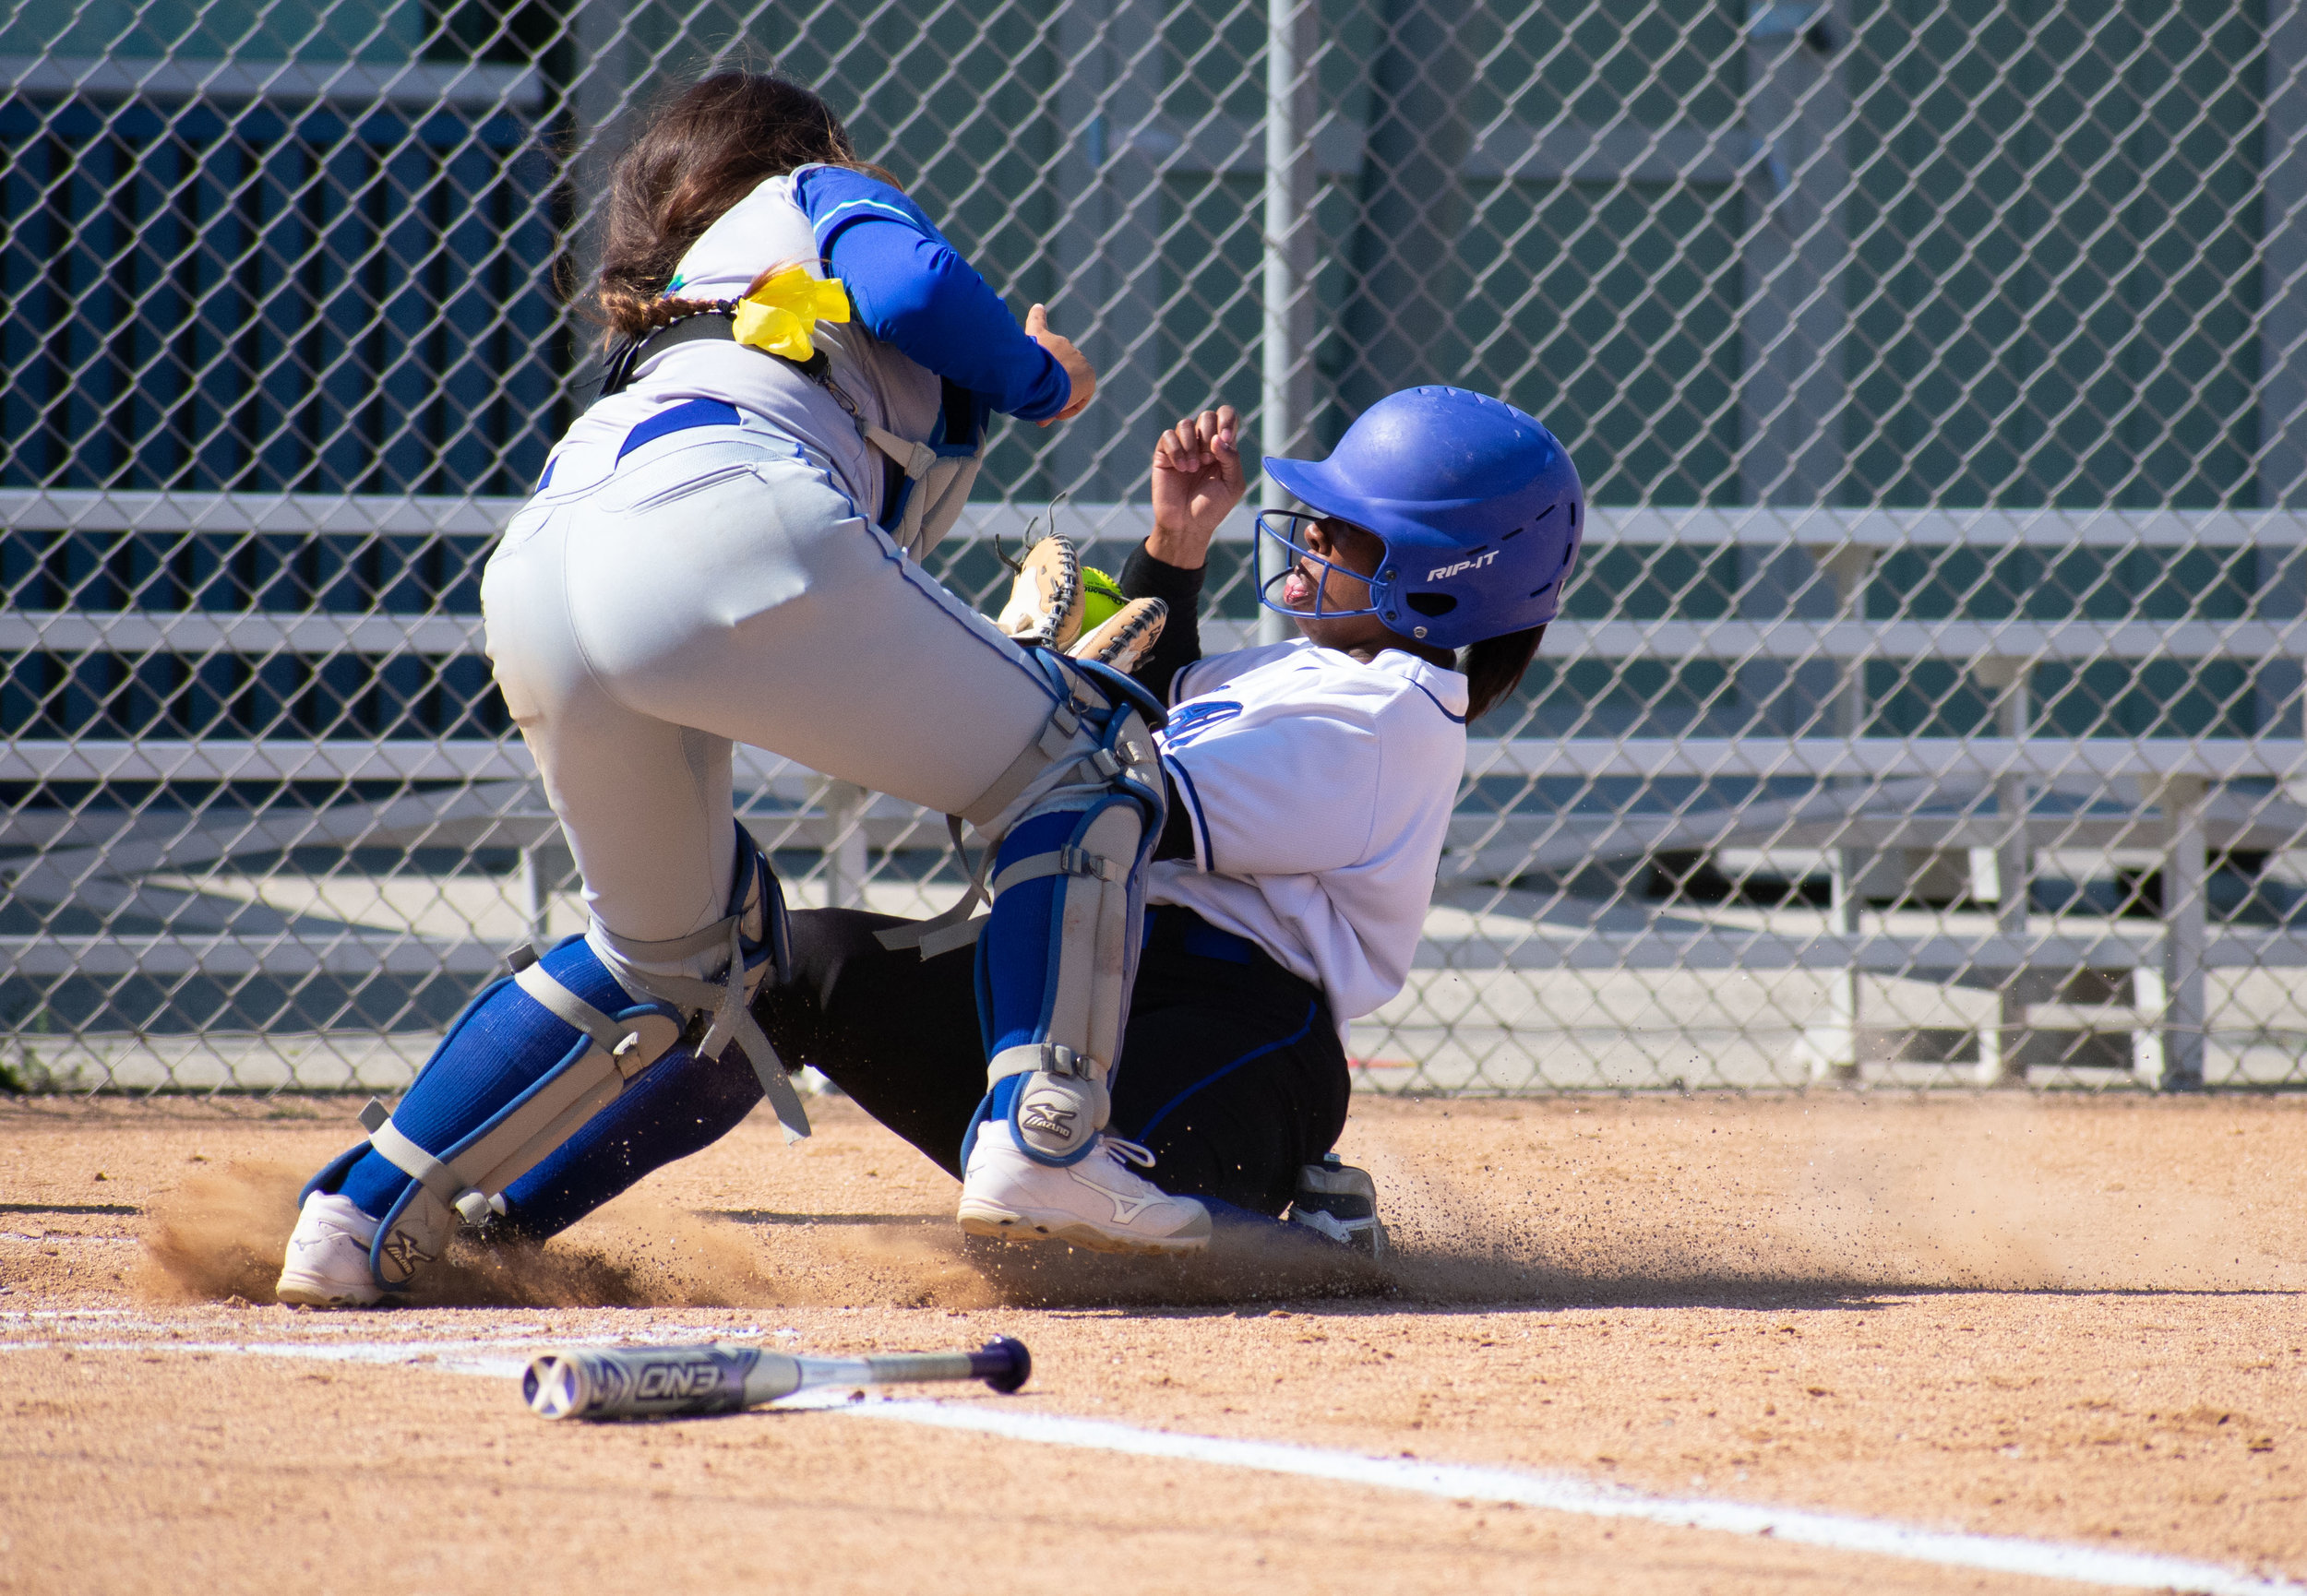 Santa Monica College Corsair Kahlaysia Miller (#8) fails to make it home in a softball game against the Oxnard Condors on Thursday, April 19, 2018 at the John Adams Middle School Field in Santa Monica, California. The game ended with an 3-2 win for the Corsairs, breaking a seven-game losing streak on their penultimate game of the season. (Ethan Lauren/Corsair Photo)